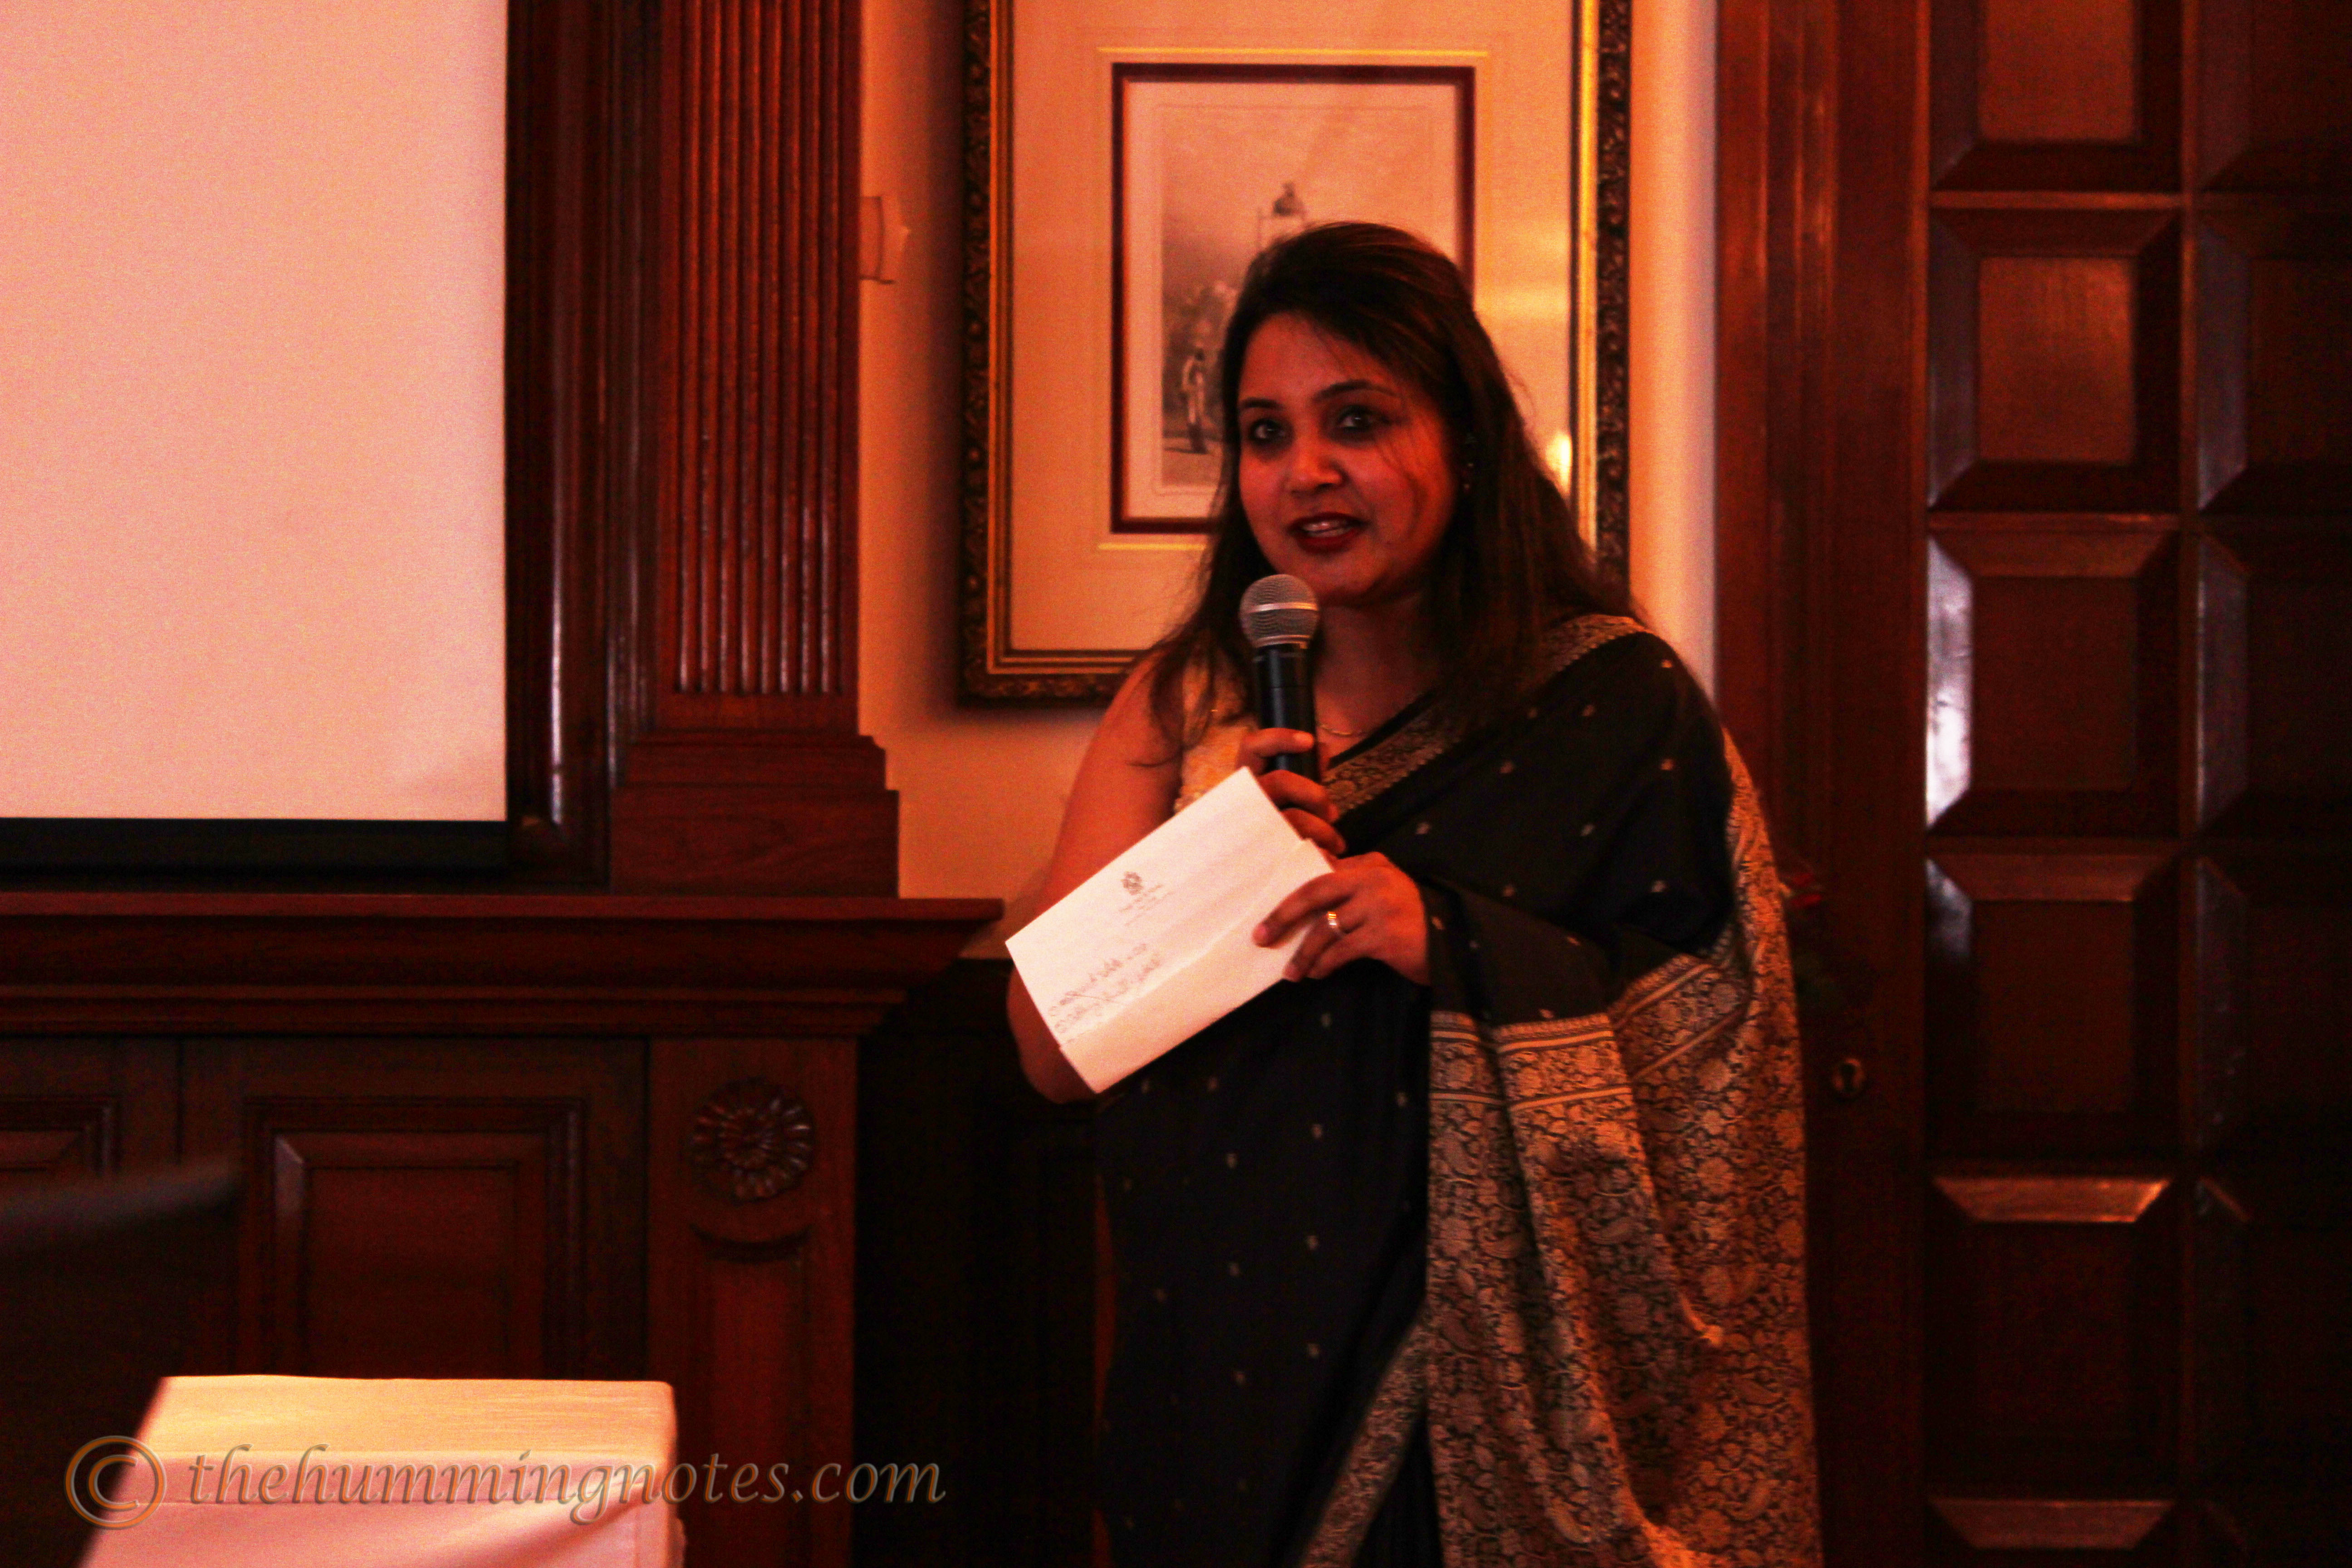 Ruchi Jain, member of The Imperial Ladies' Club welcoming the guests